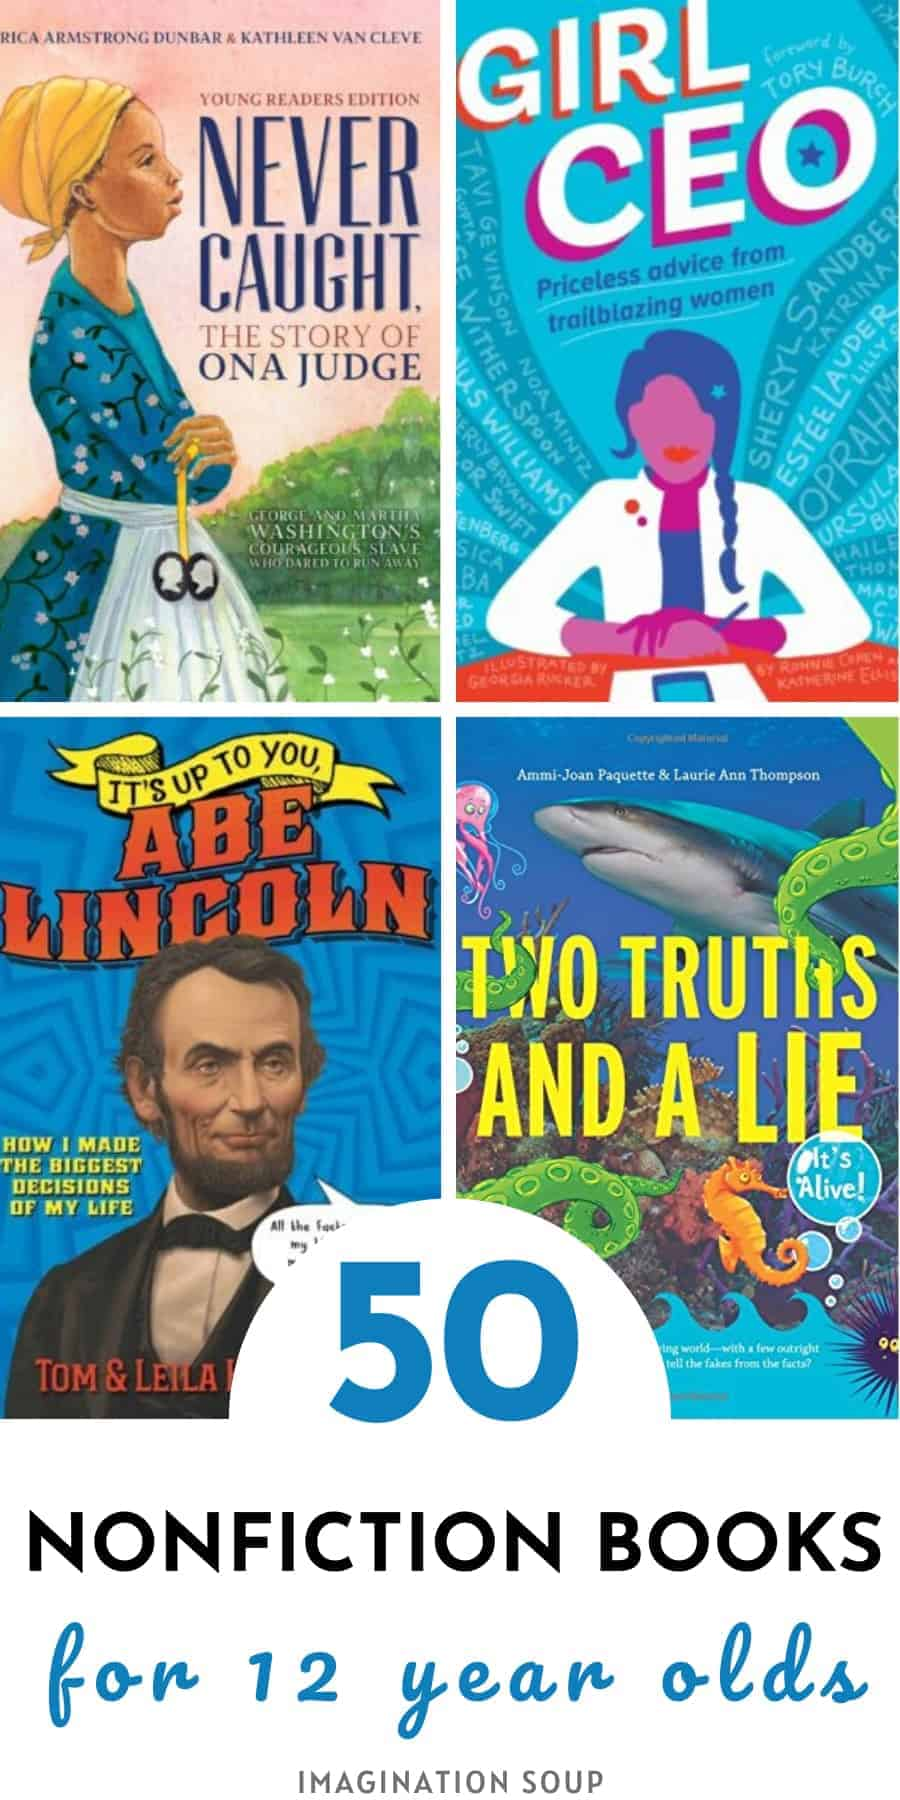 best nonfiction books for 12 year olds (7th grade)